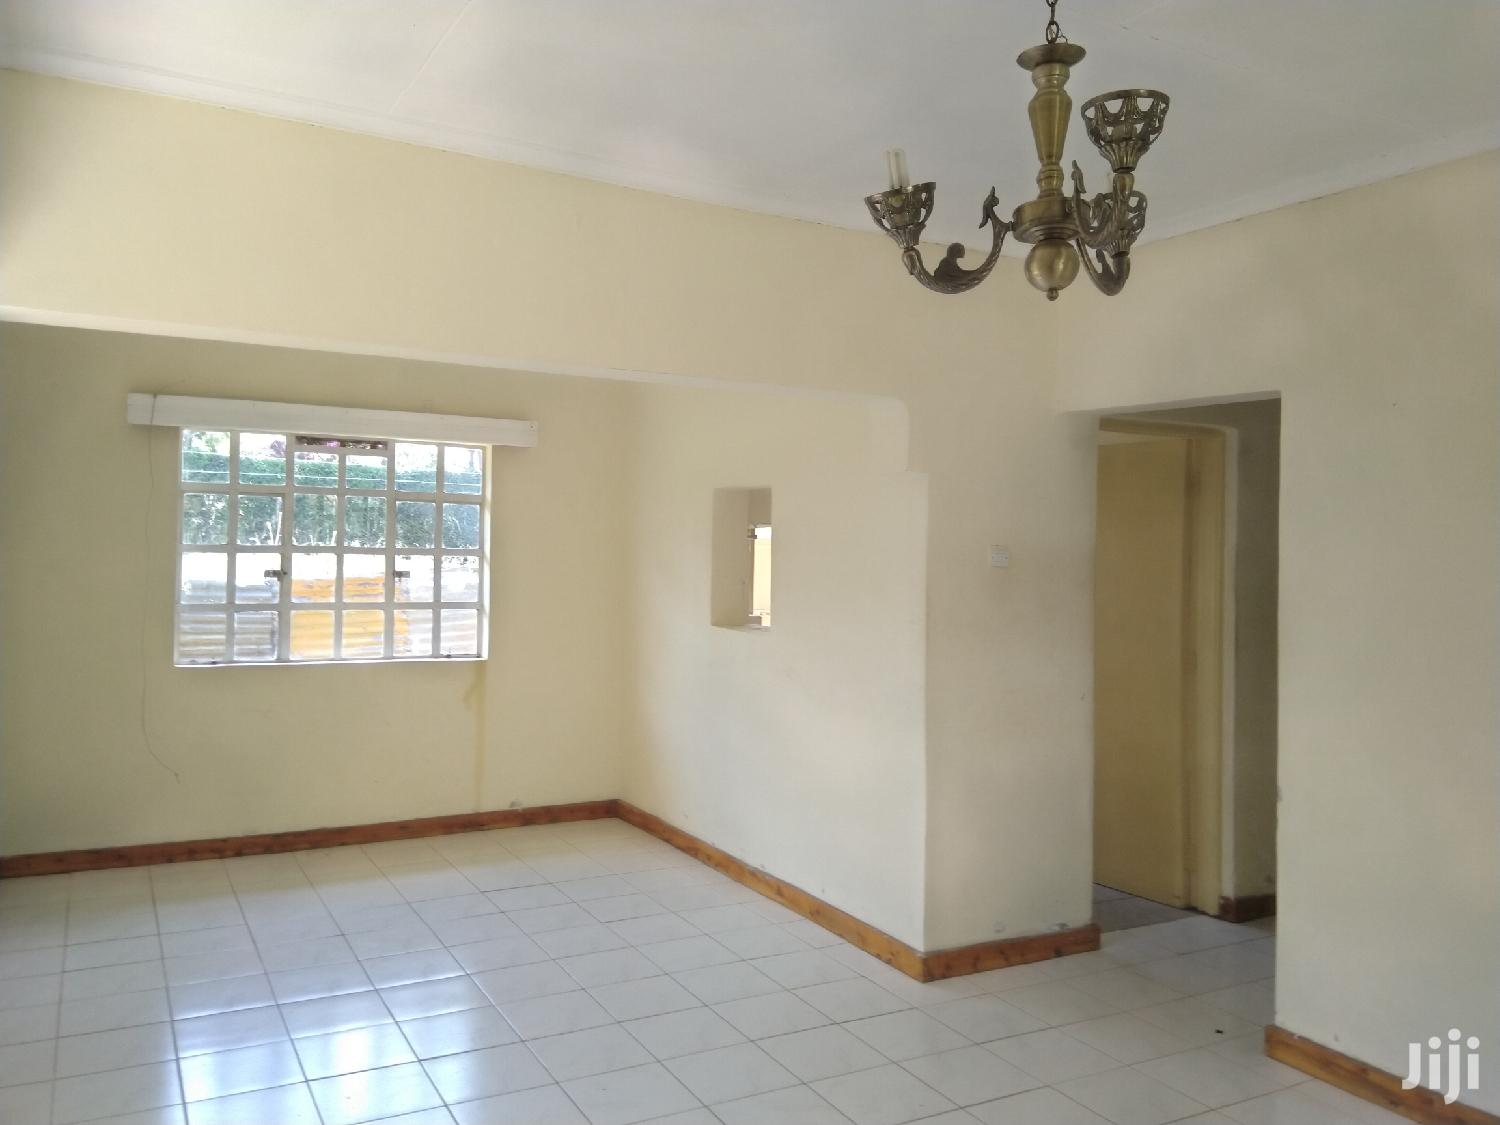 Archive: A Very Spacious 3 Bedroom Master Ensuite Bungalow In A Gated Community